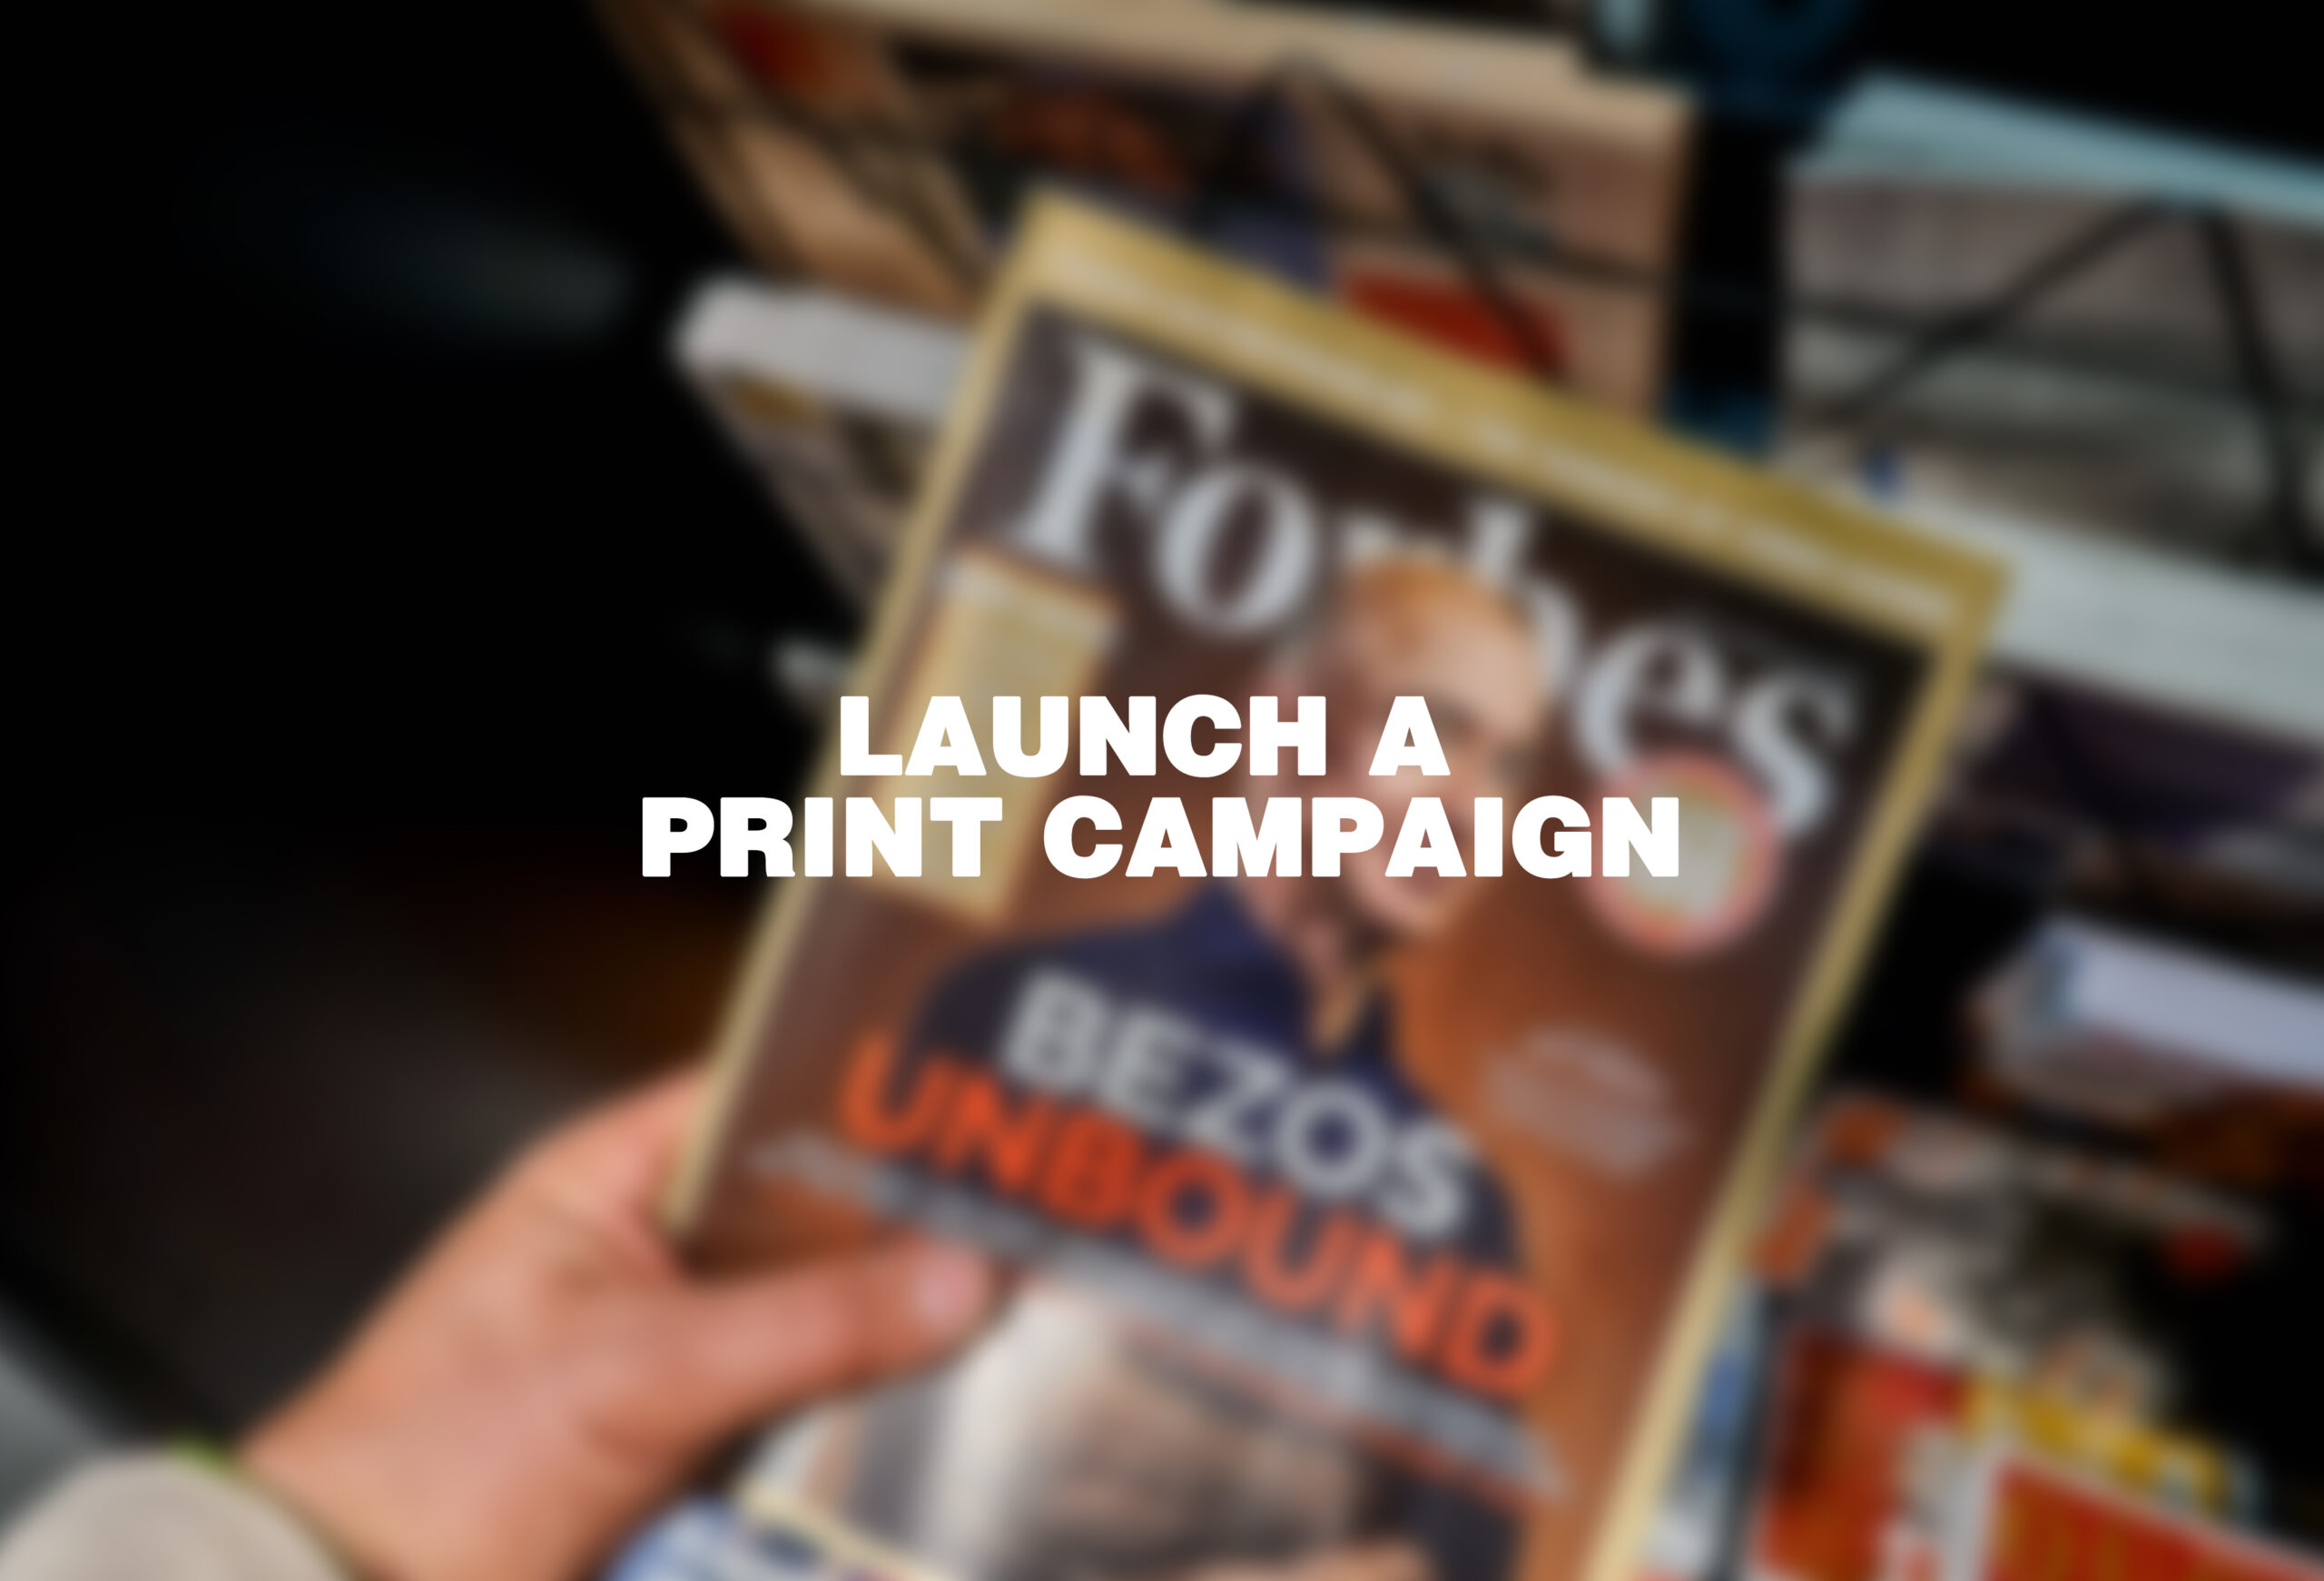 Launch a Print Campaign